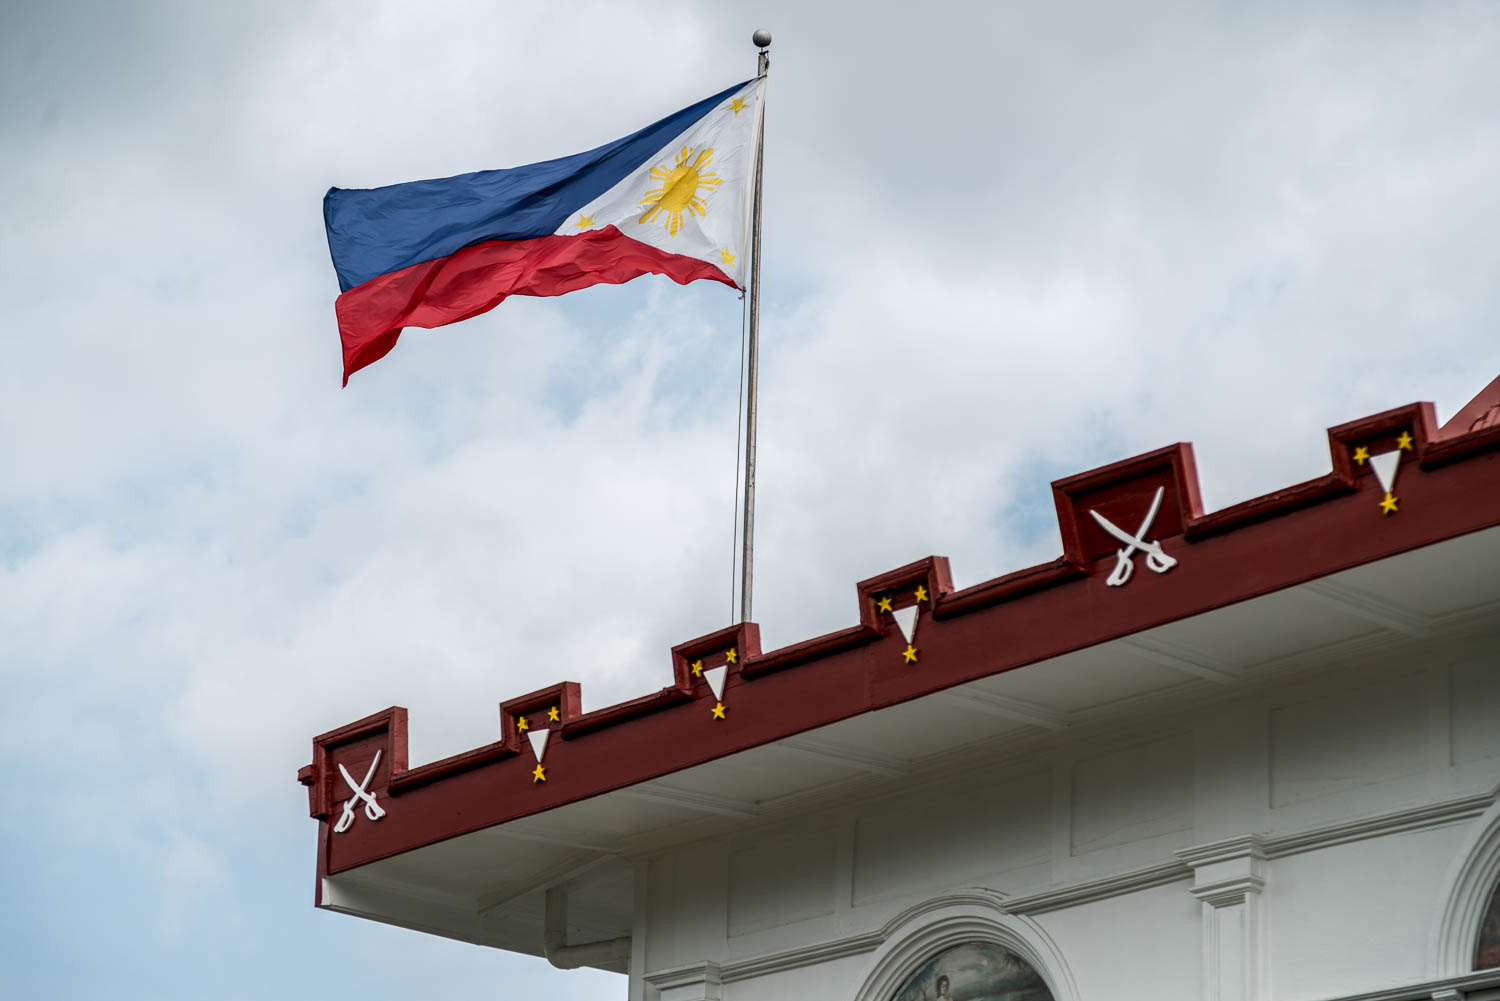 The shade of blue of our Philippine flag was changed to sky blue in 1985 by then Pres. Marcos, then back to navy blue in 1987 by then Pres. Aquino, then to royal blue (current shade) in 1998.Unlike the present day flag, the original flag had a mythological sun with a face, similar to the flag flown by the revolutionary government.